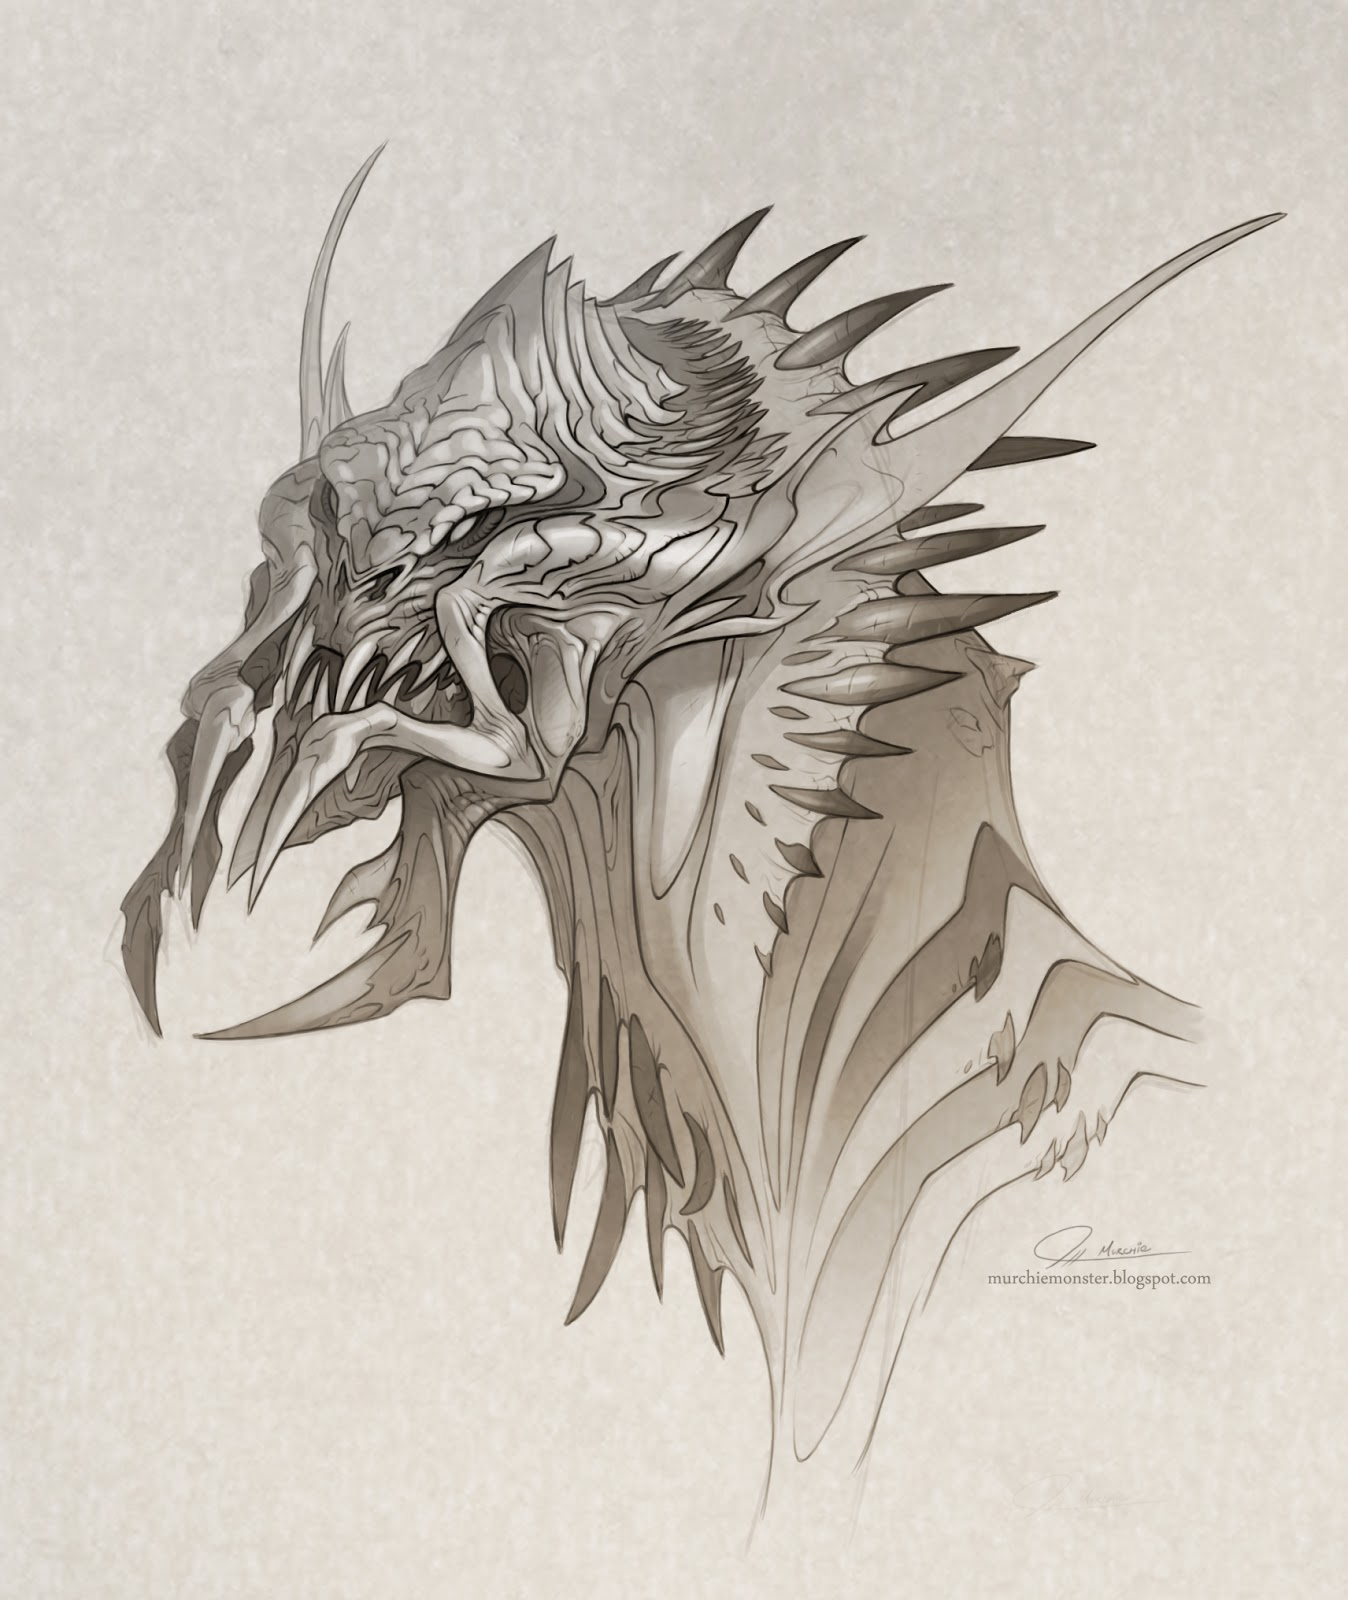 1348x1600 Another Creature Drawing The Art Of Jeff Murchie